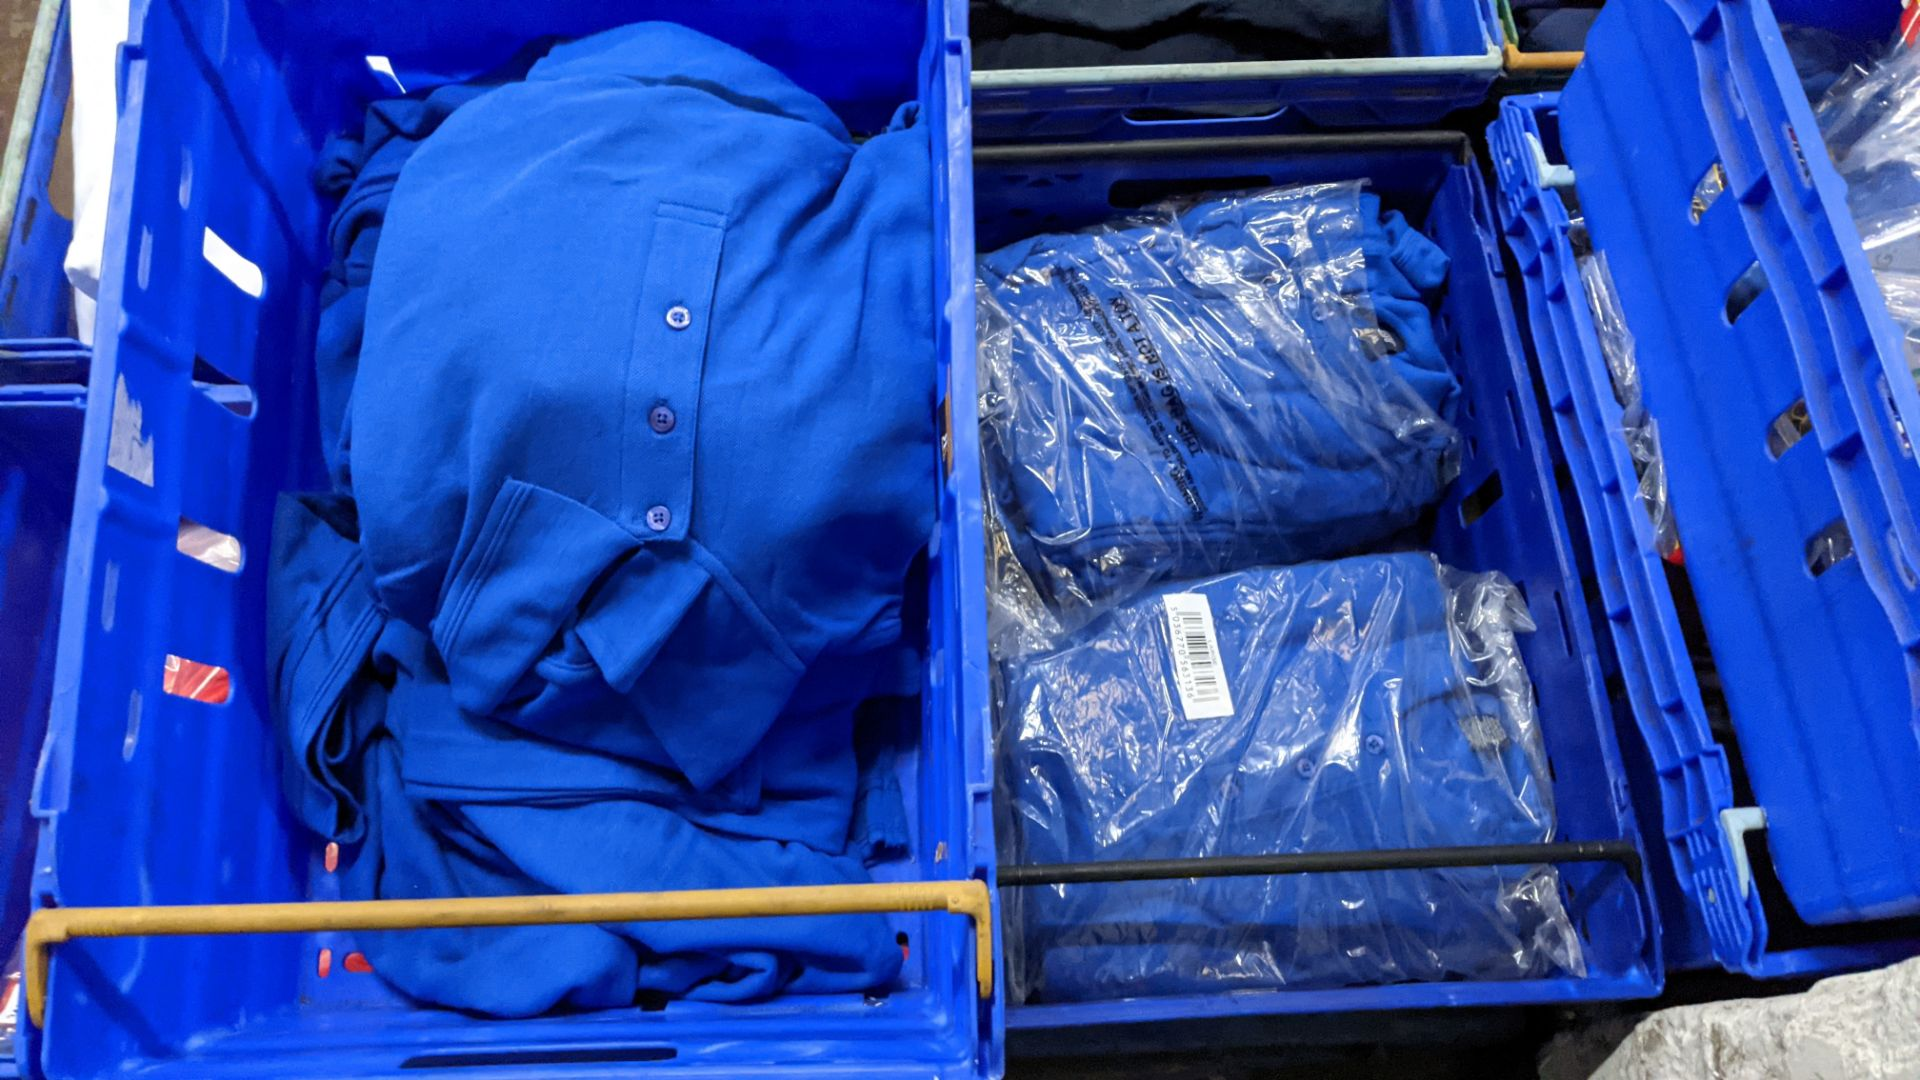 Approx 30 off royal blue polo shirts (2 crates) - Image 2 of 6